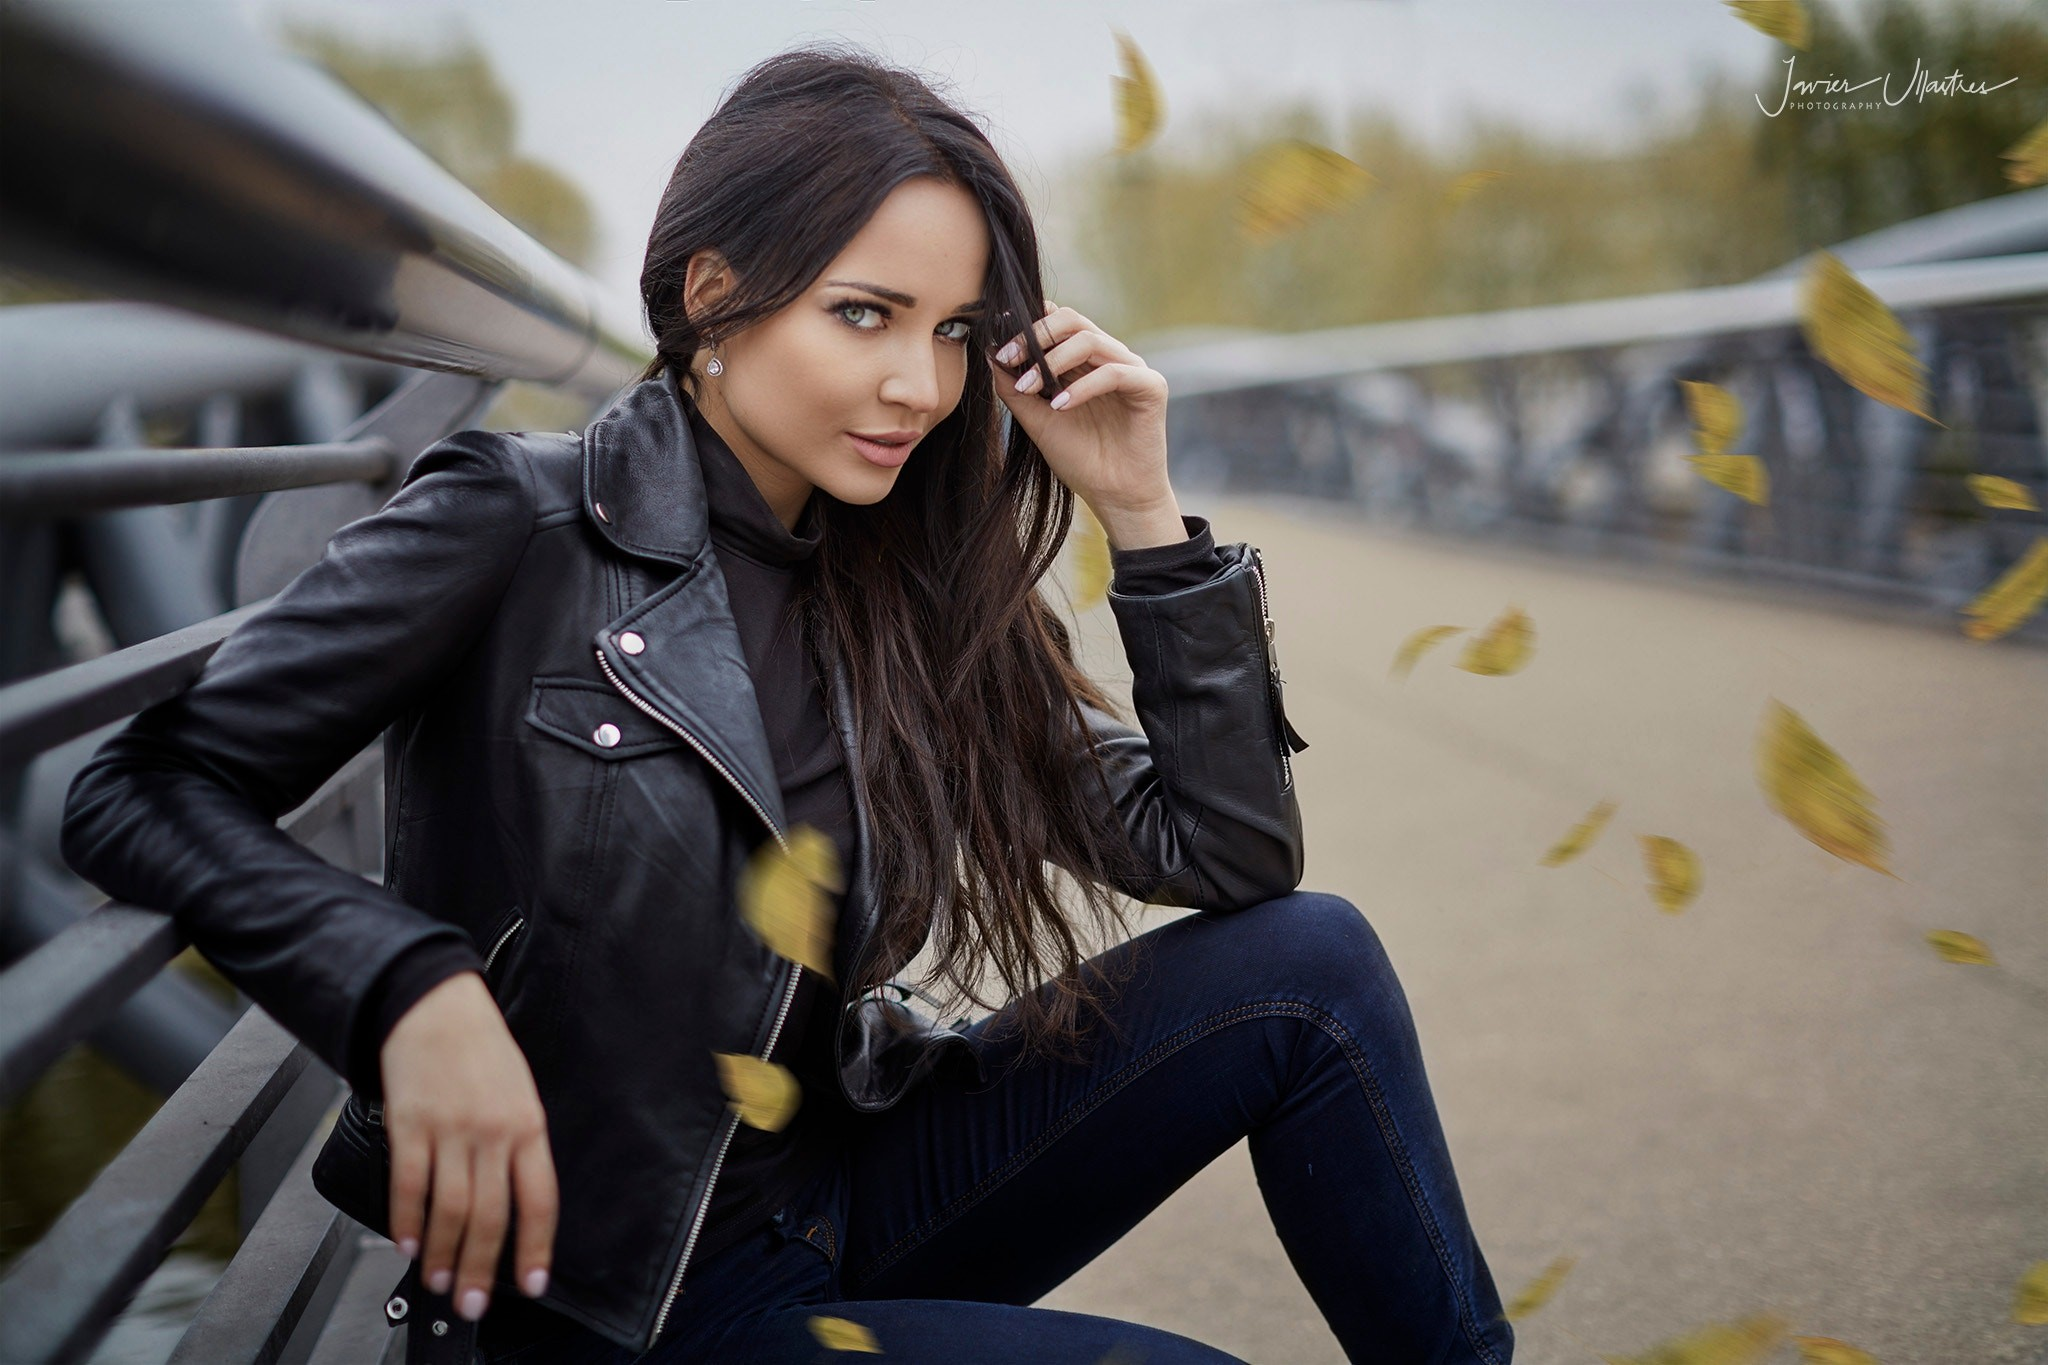 Schwarze Lederjacken Wallpaper : Brunette, Women Outdoors, Jeans, Leather